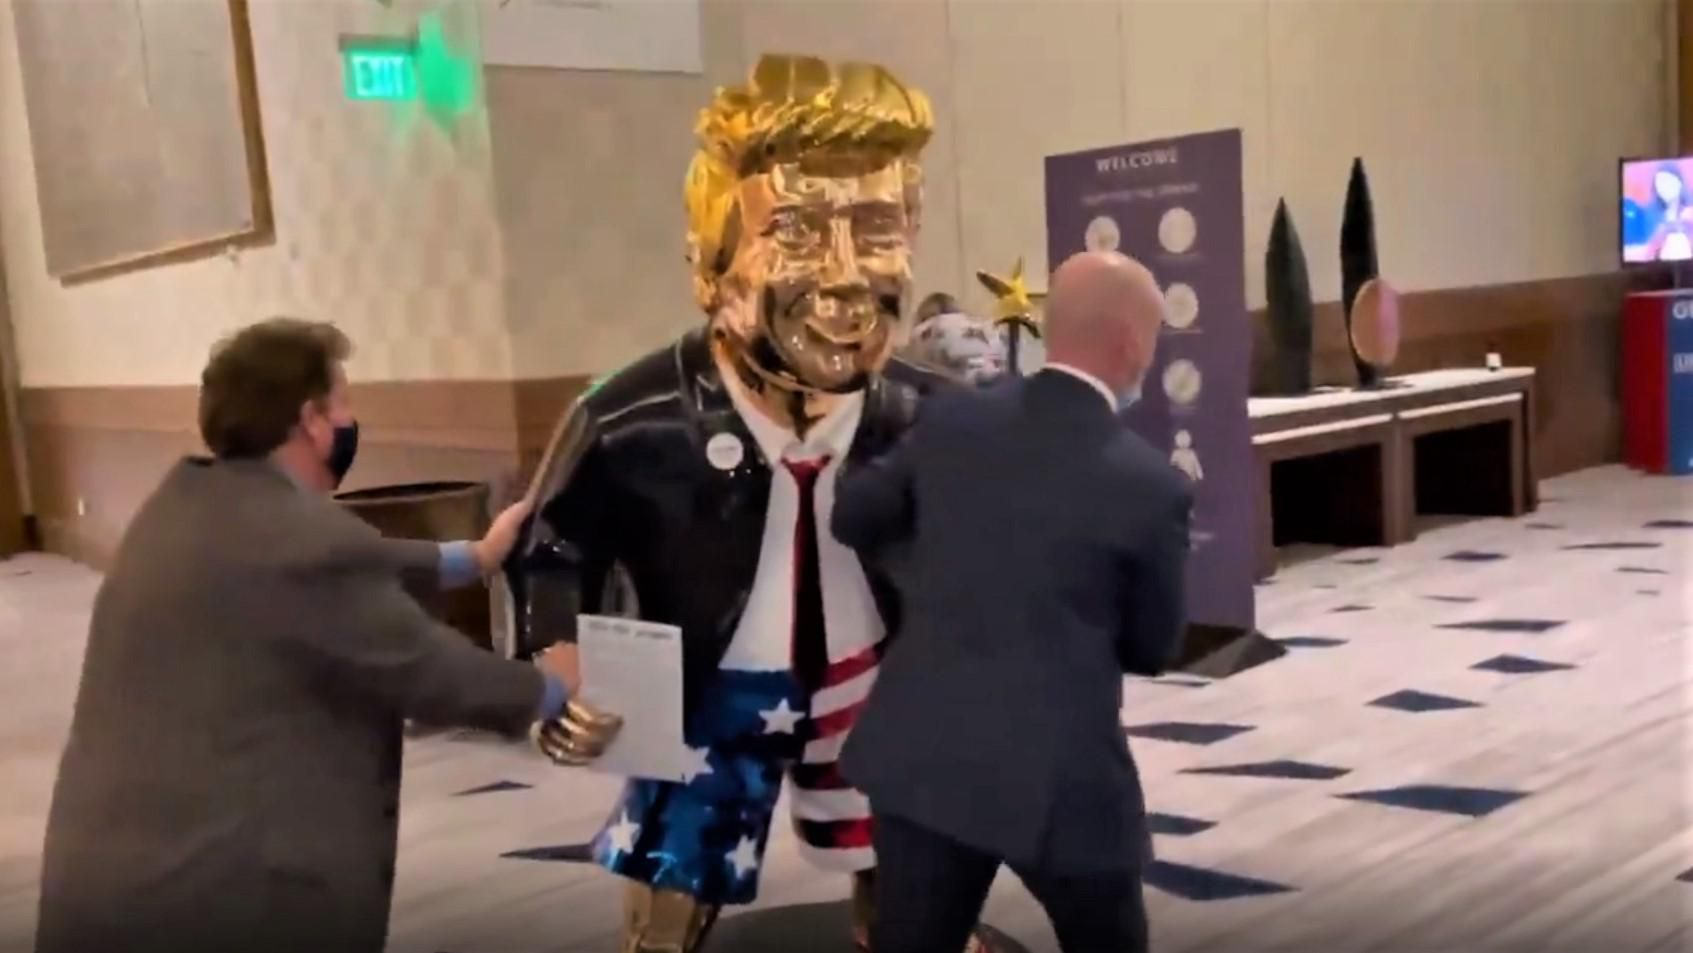 Golden Trump statue at CPAC was made in Mexico -- and is for sale: report